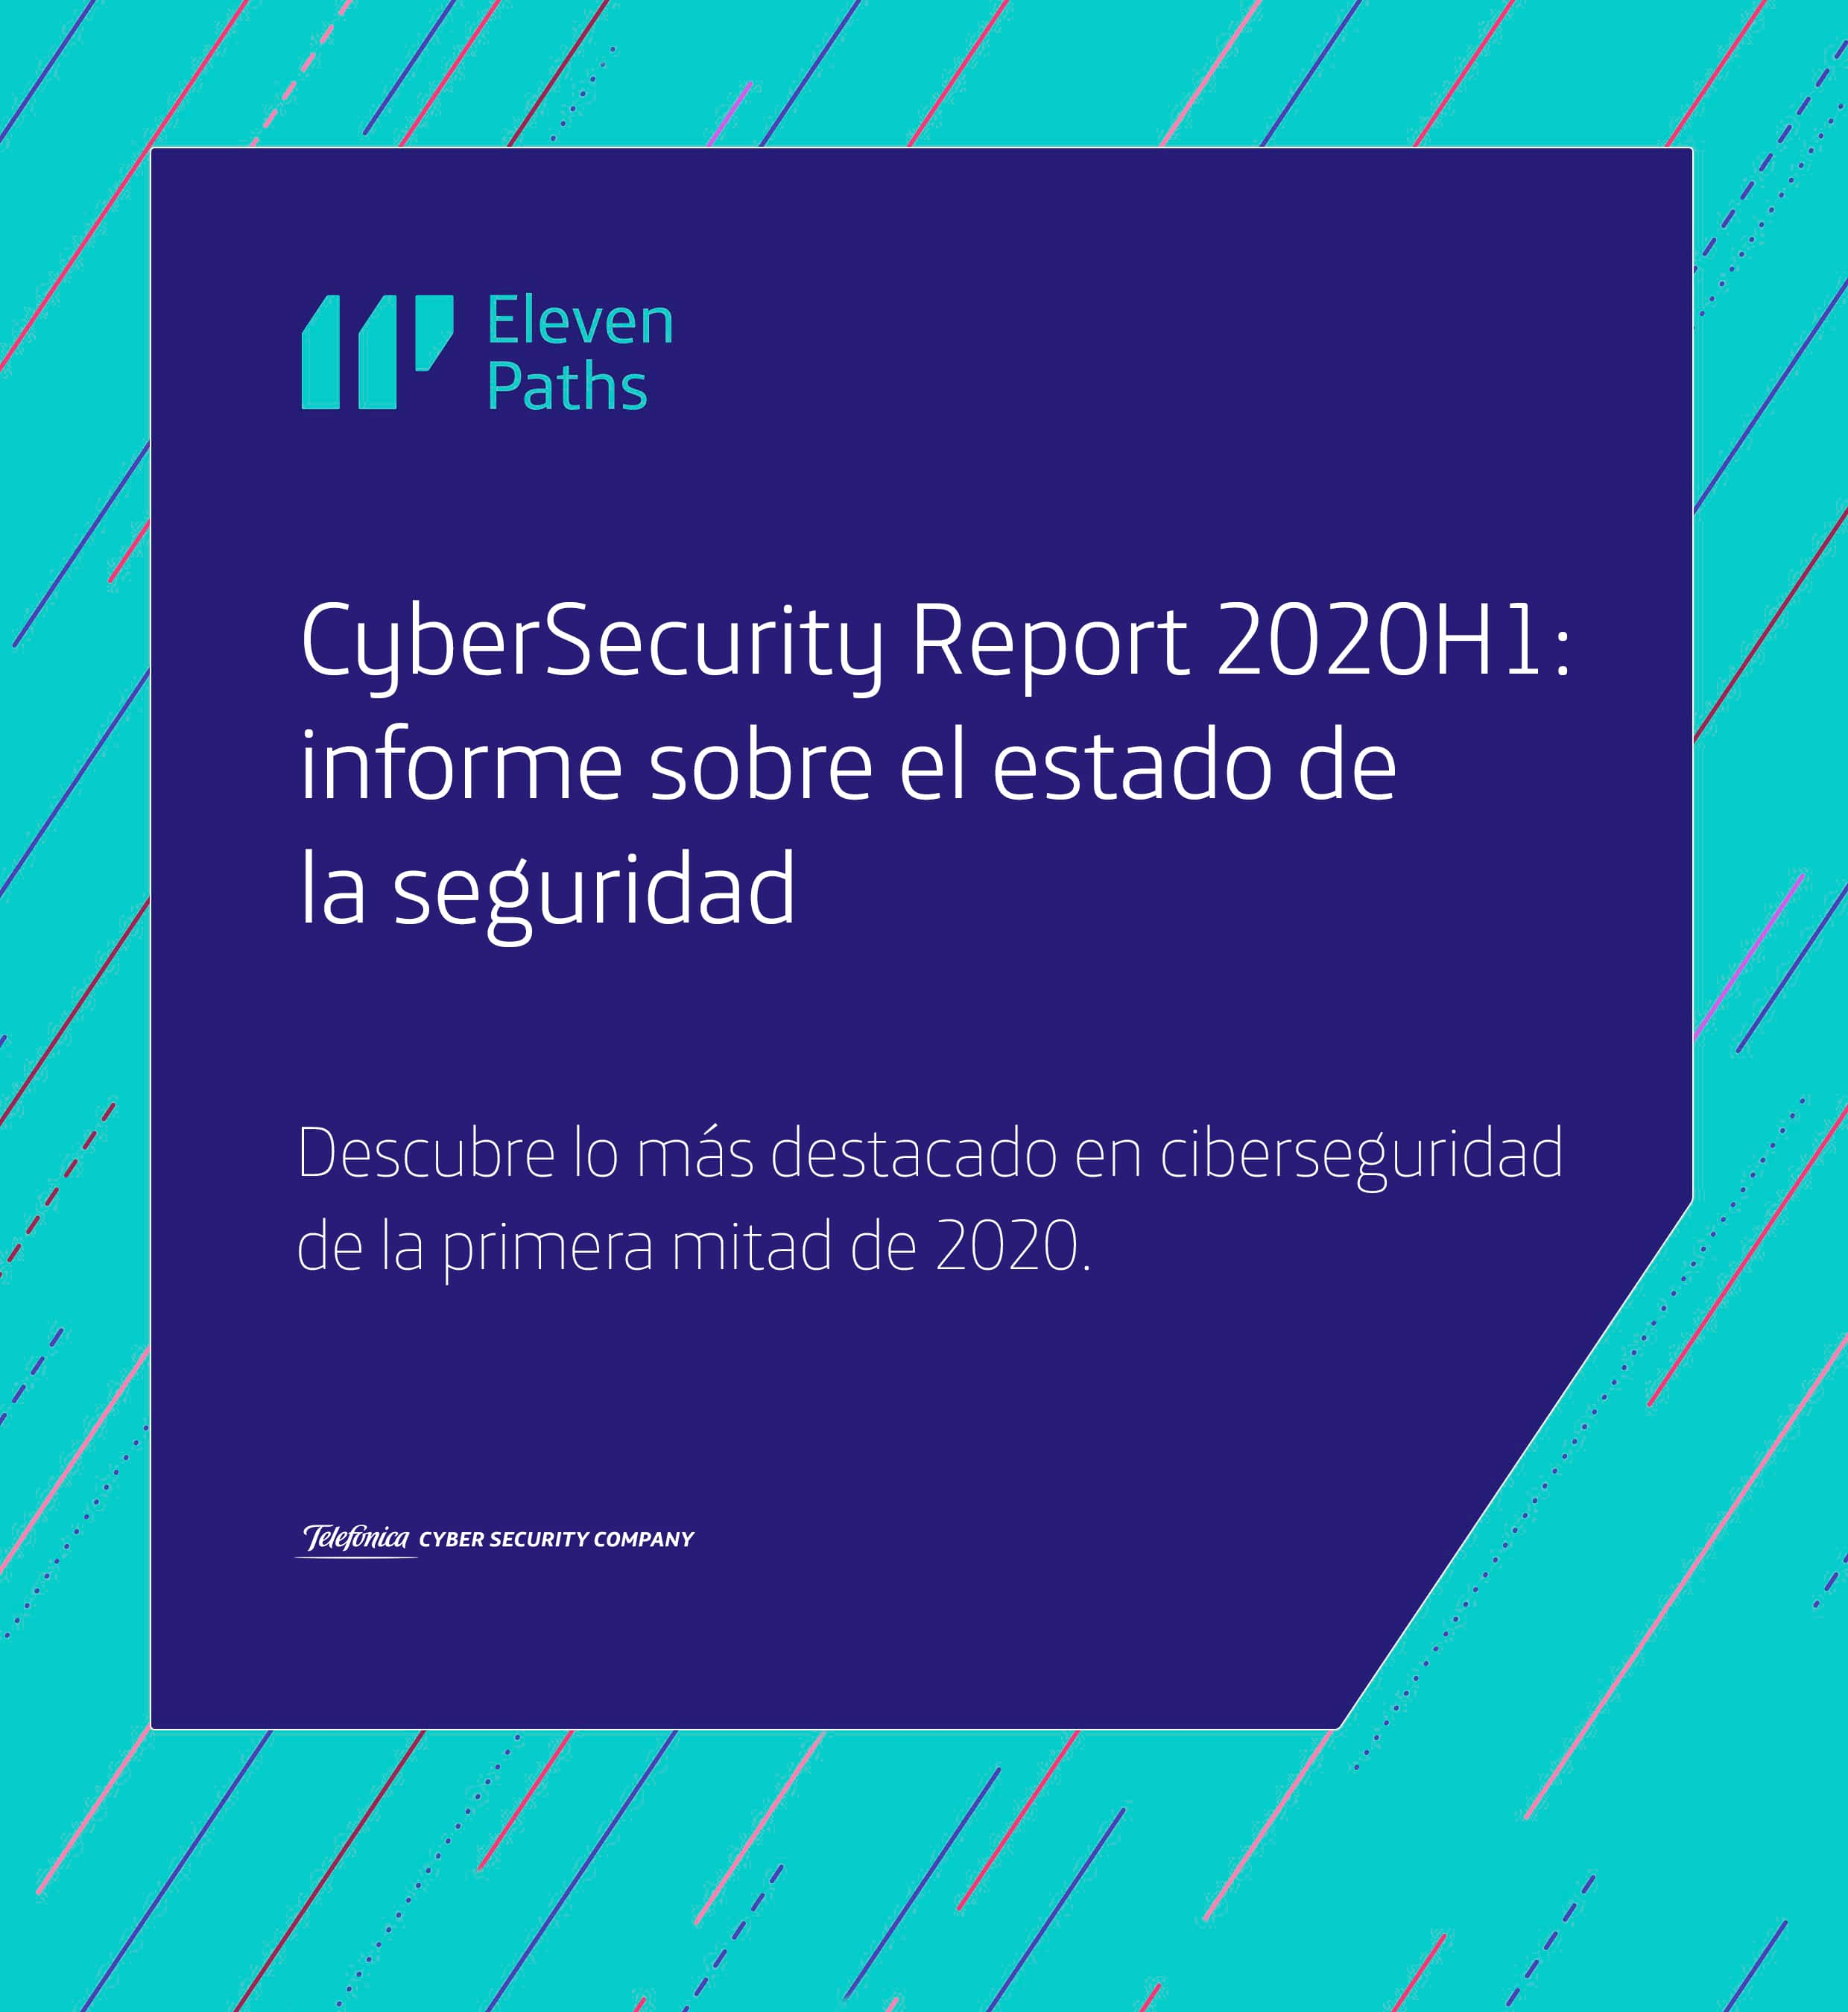 ElevenPaths CyberSecurity Report 2020H1